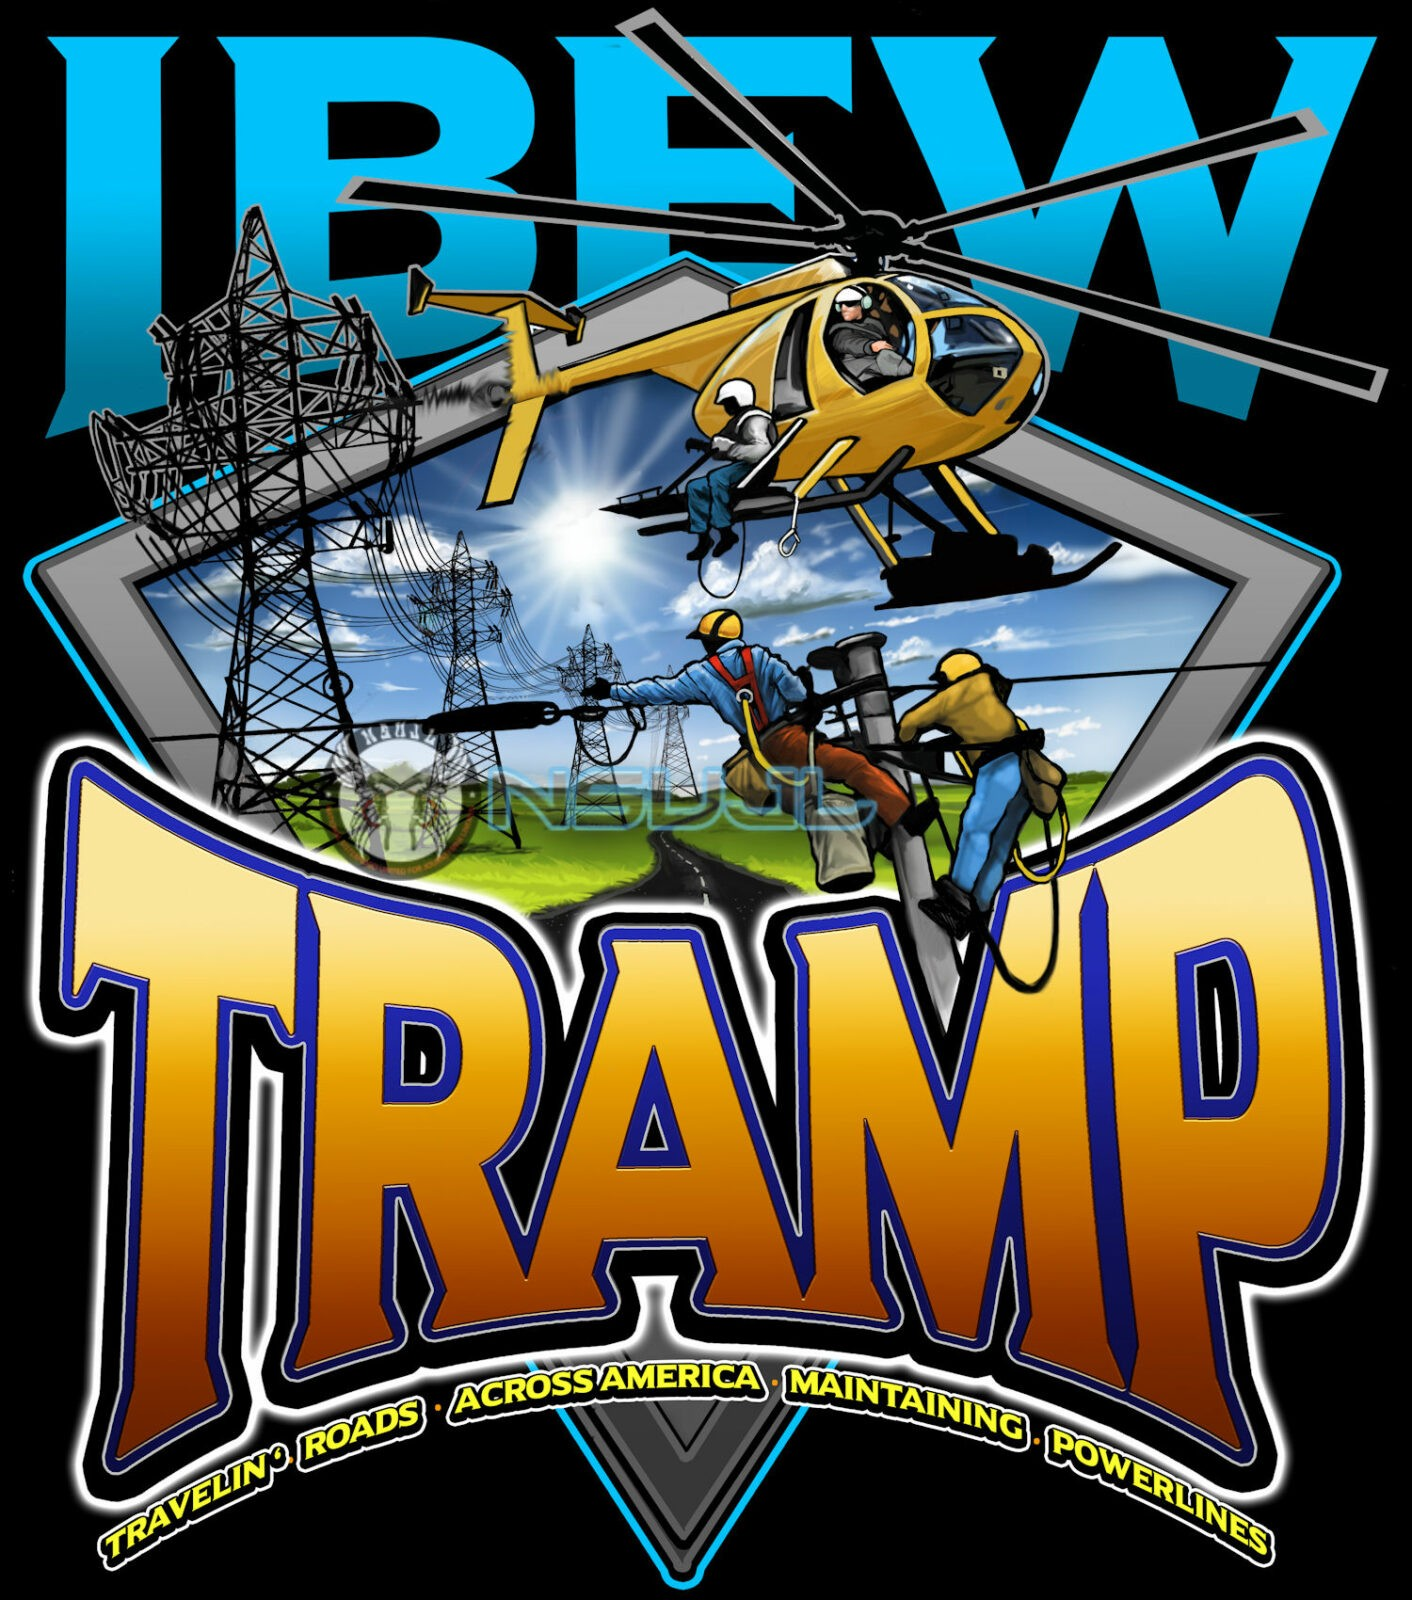 NSUJL's Tramp Lives Matter Tshirt fundraiser with IBEW Local 2